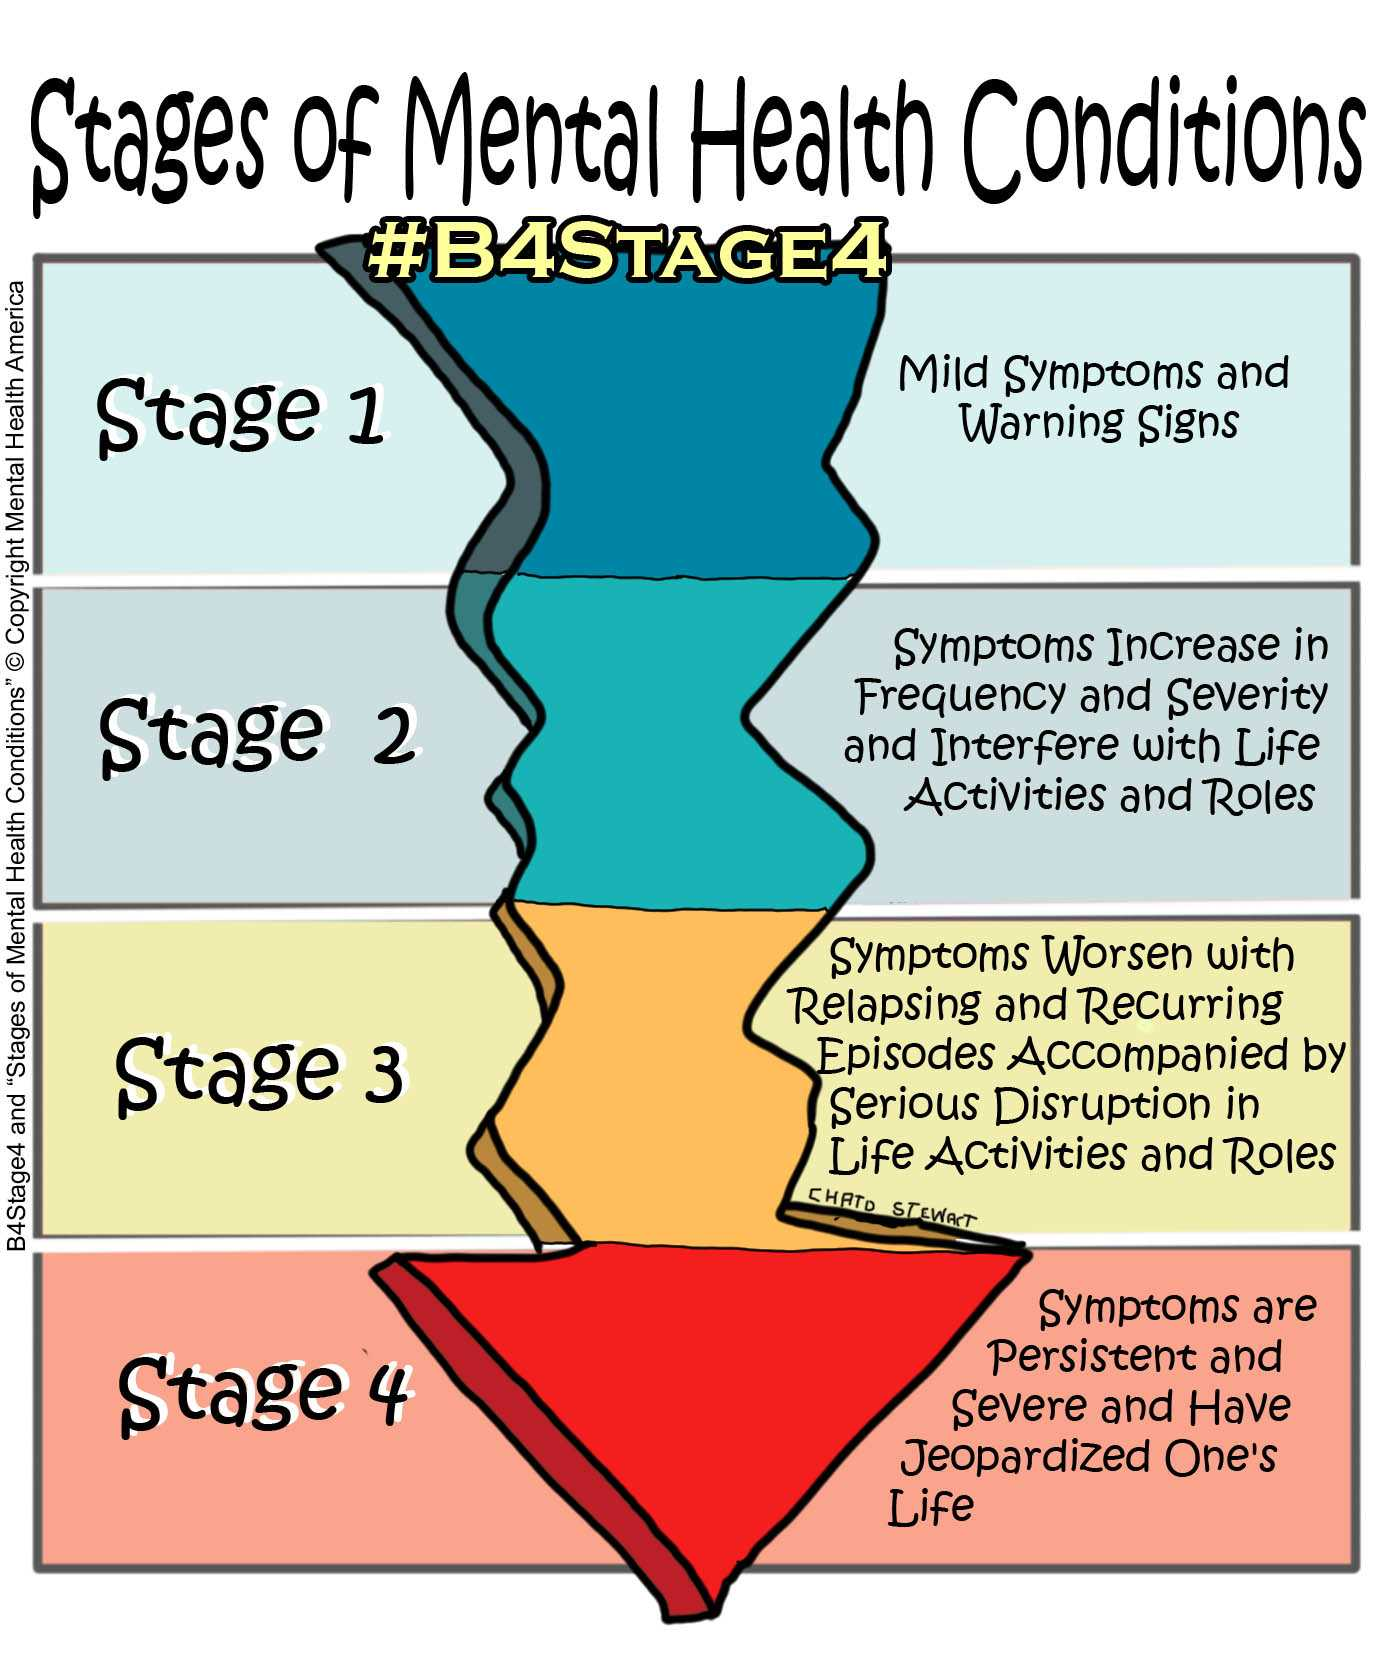 Stages of Mental Health Conditions